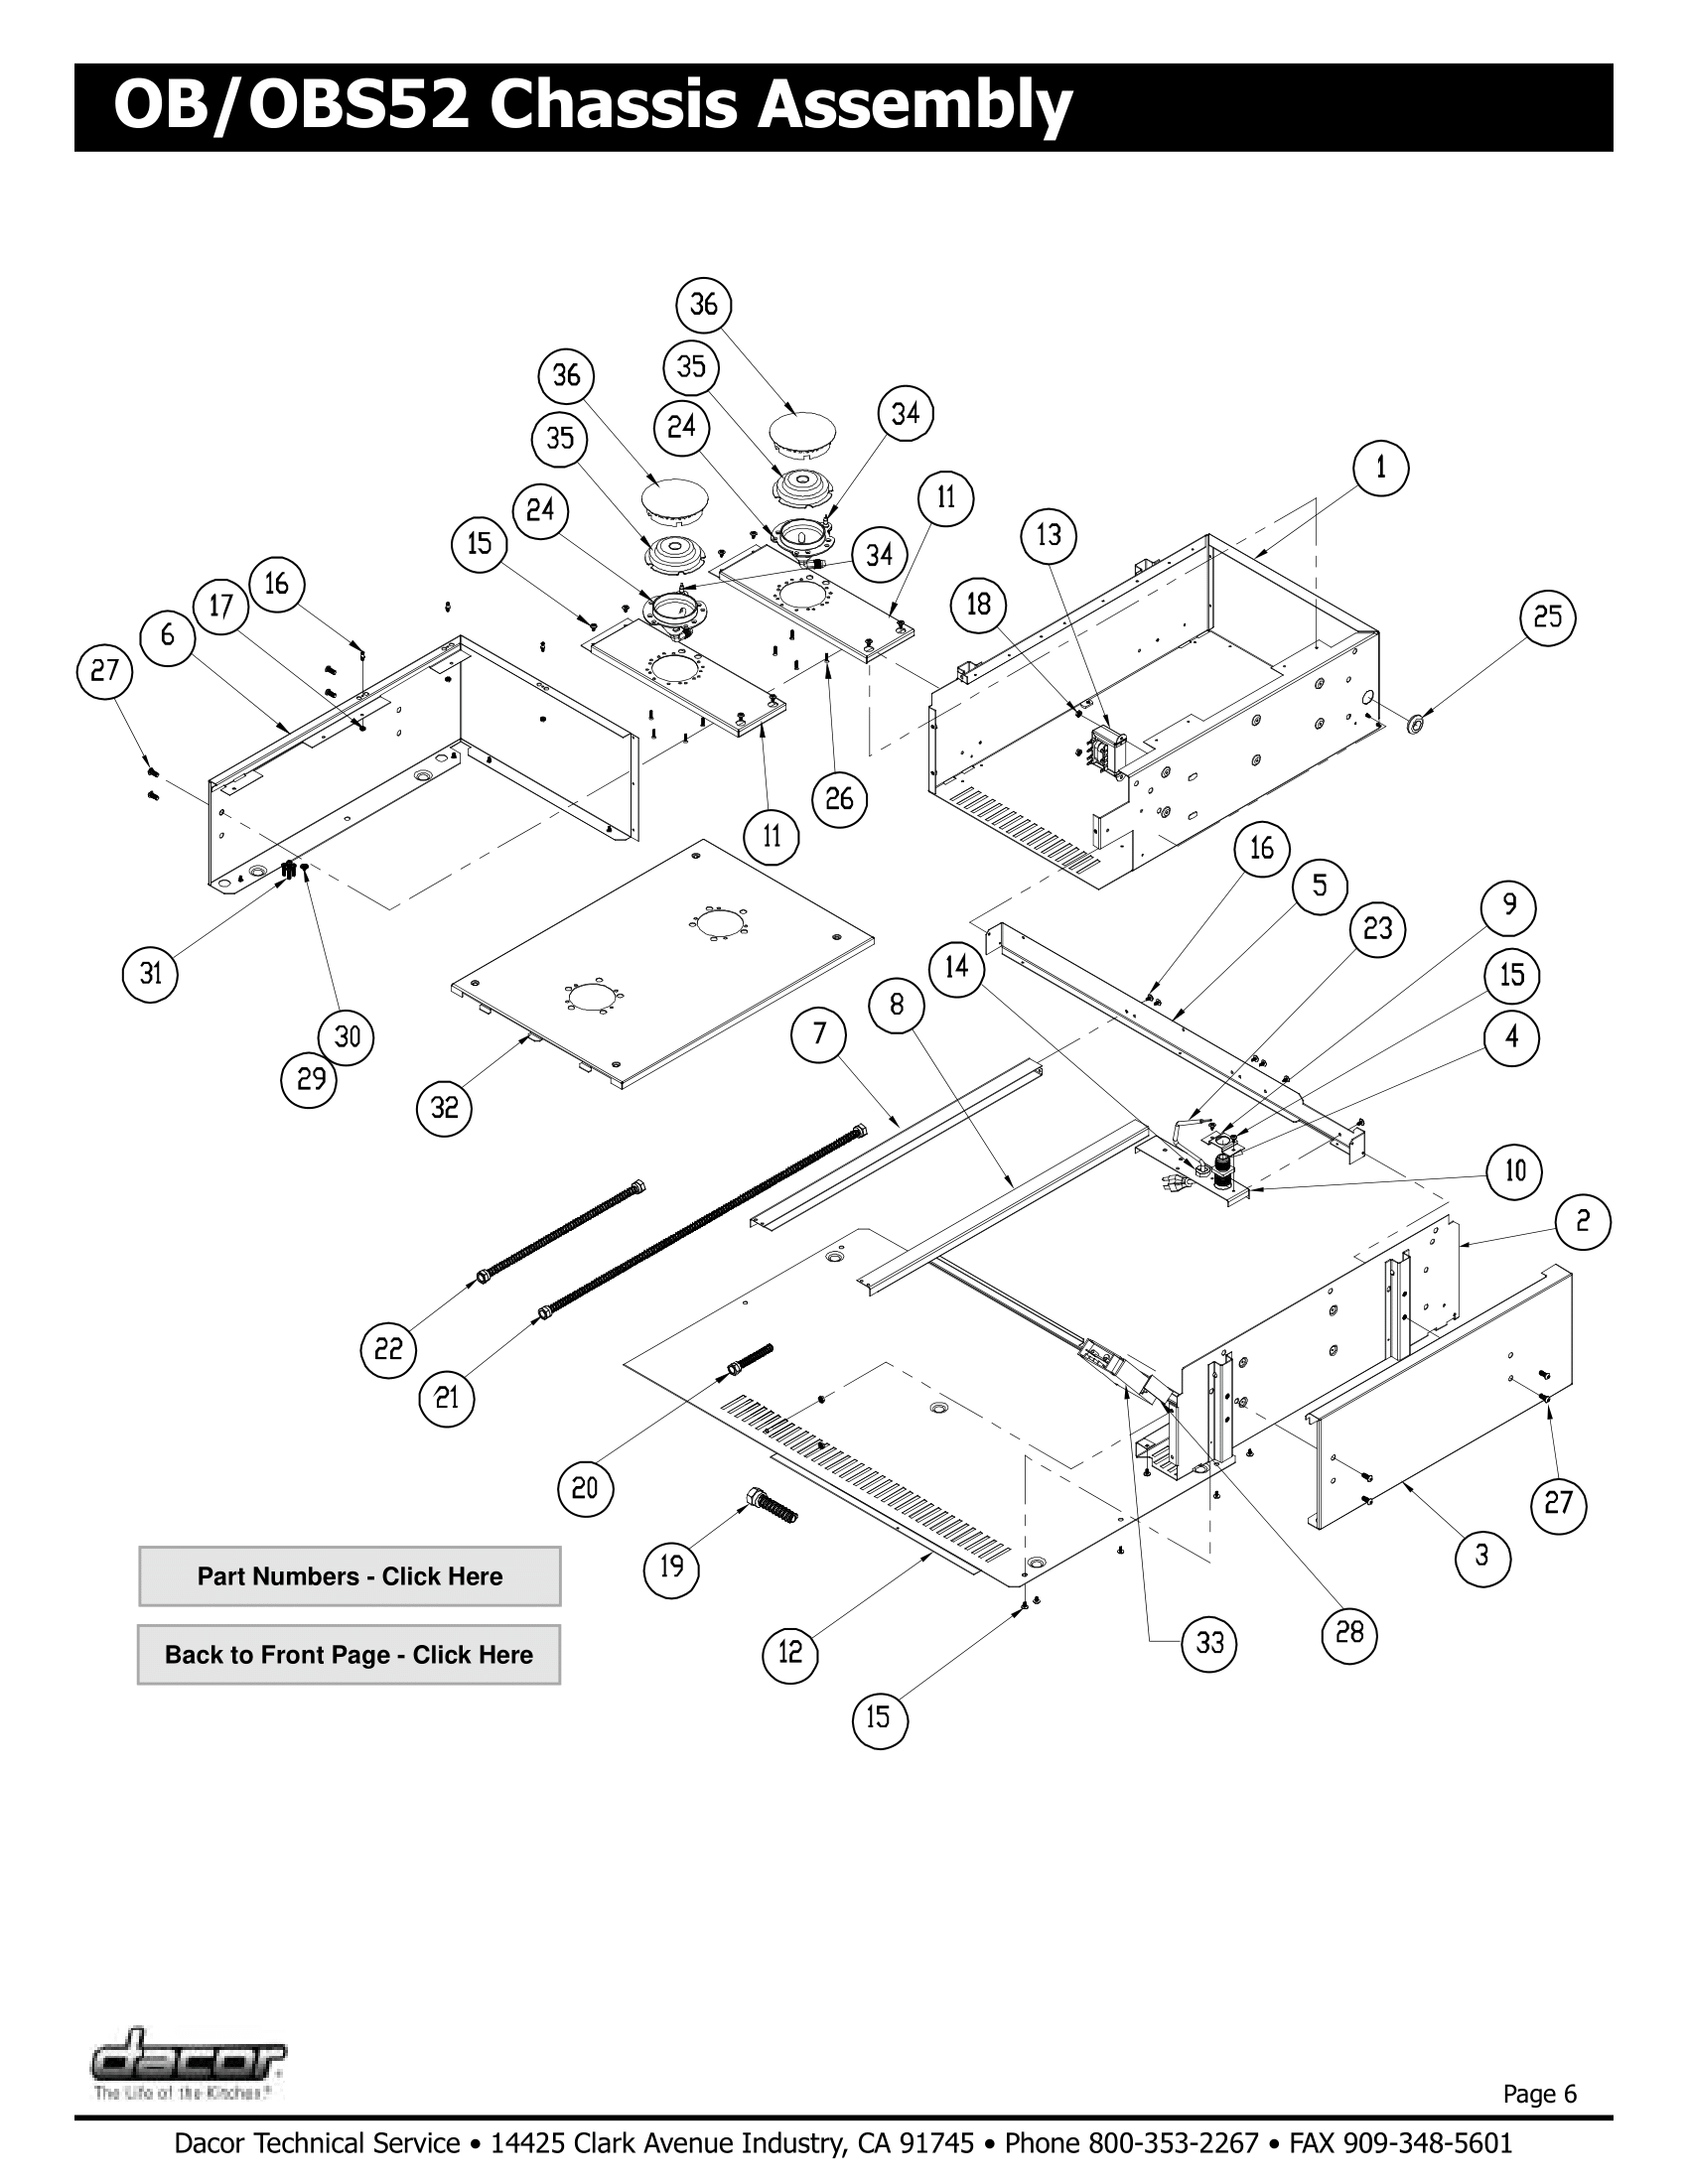 Dacor OB52 Chassis Assembly Schematic